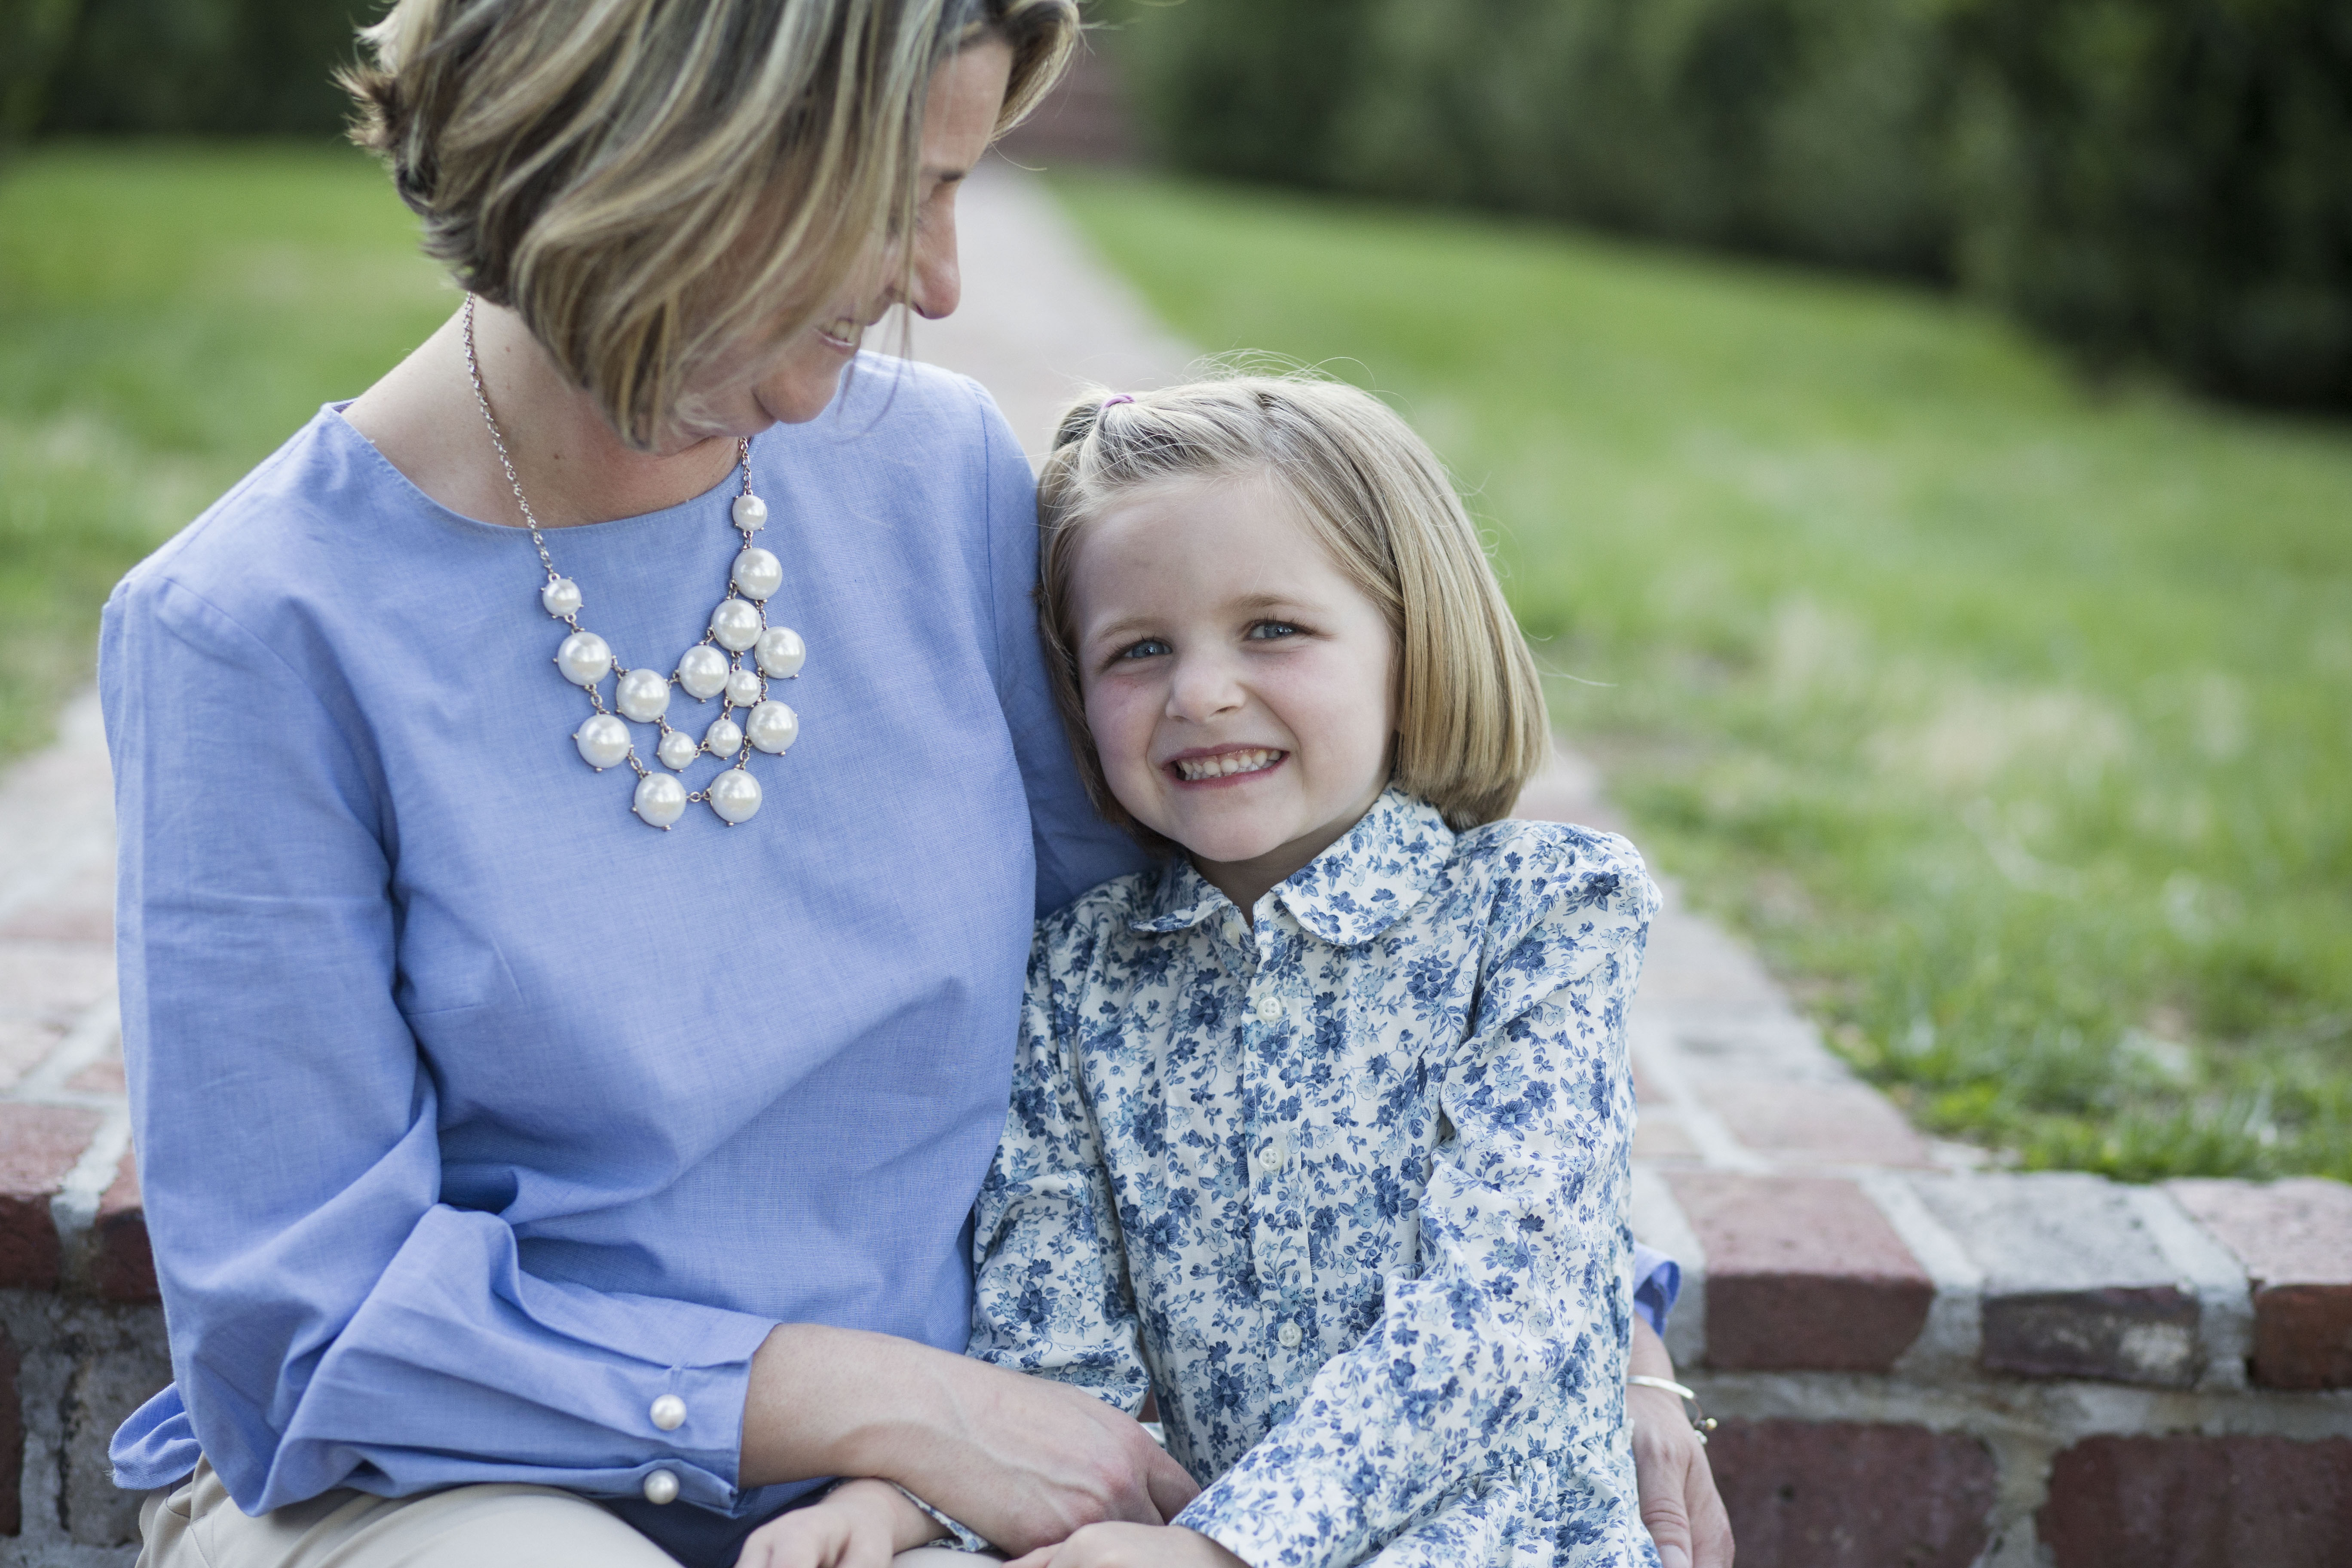 Mom and daughter at Morven Park